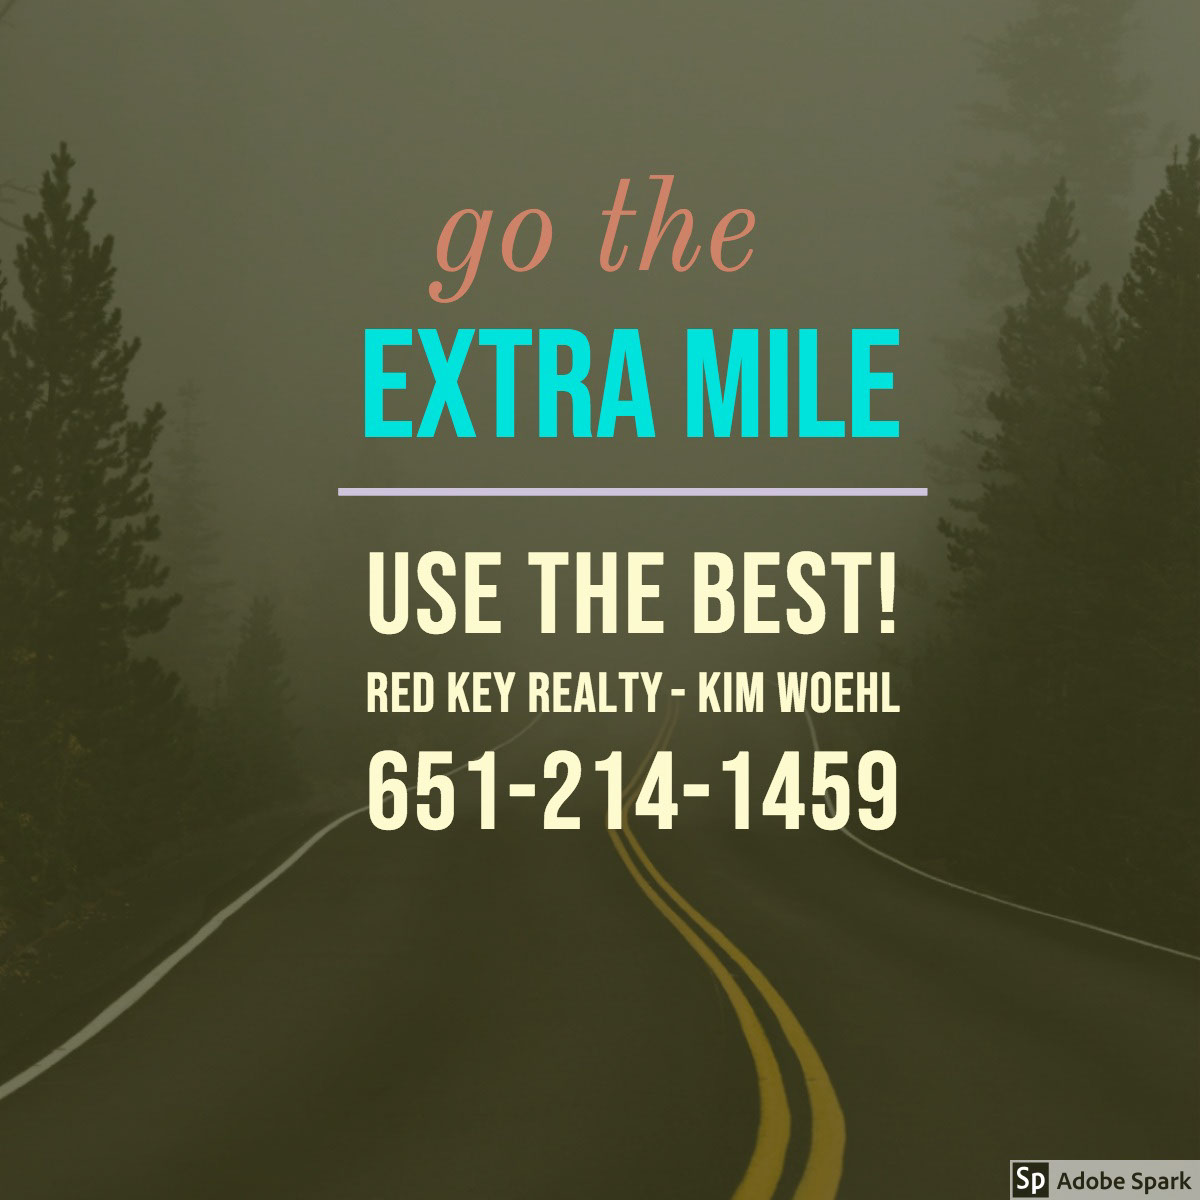 <BR>extra mile<BR> <BR>extra mile<BR><P>go the<P>Use the best!<BR>Red Key Realty - Kim Woehl<BR>651-214-1459